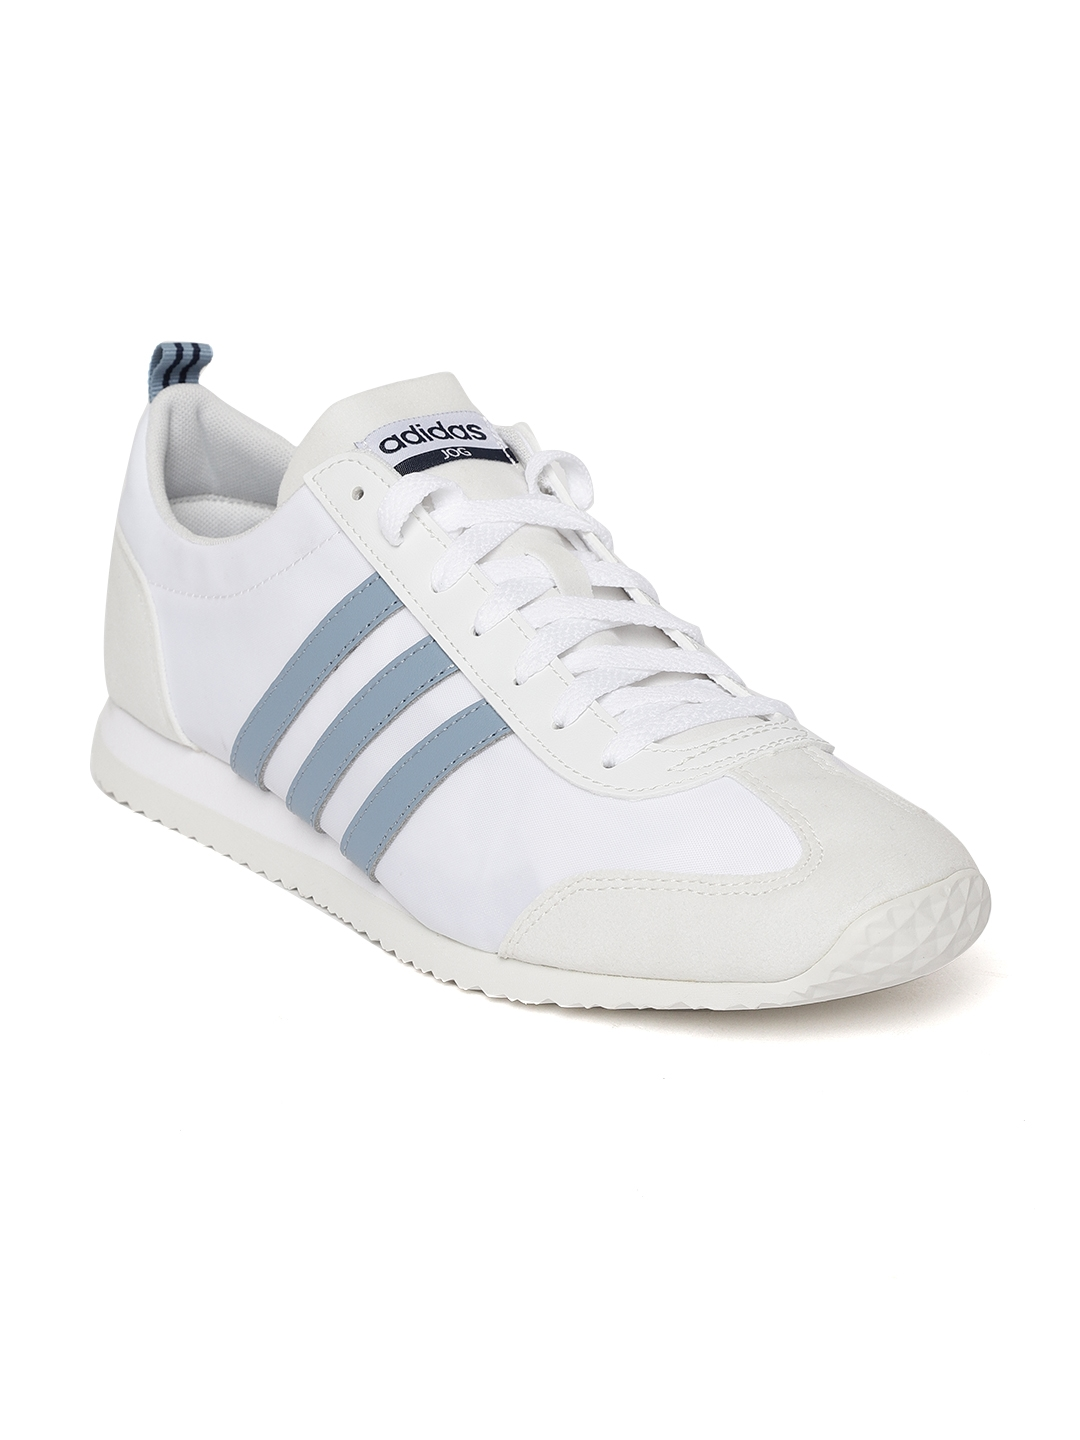 Men Wkoziputx Adidas Vs Running Shoes Jog White nPkwO0ZN8X